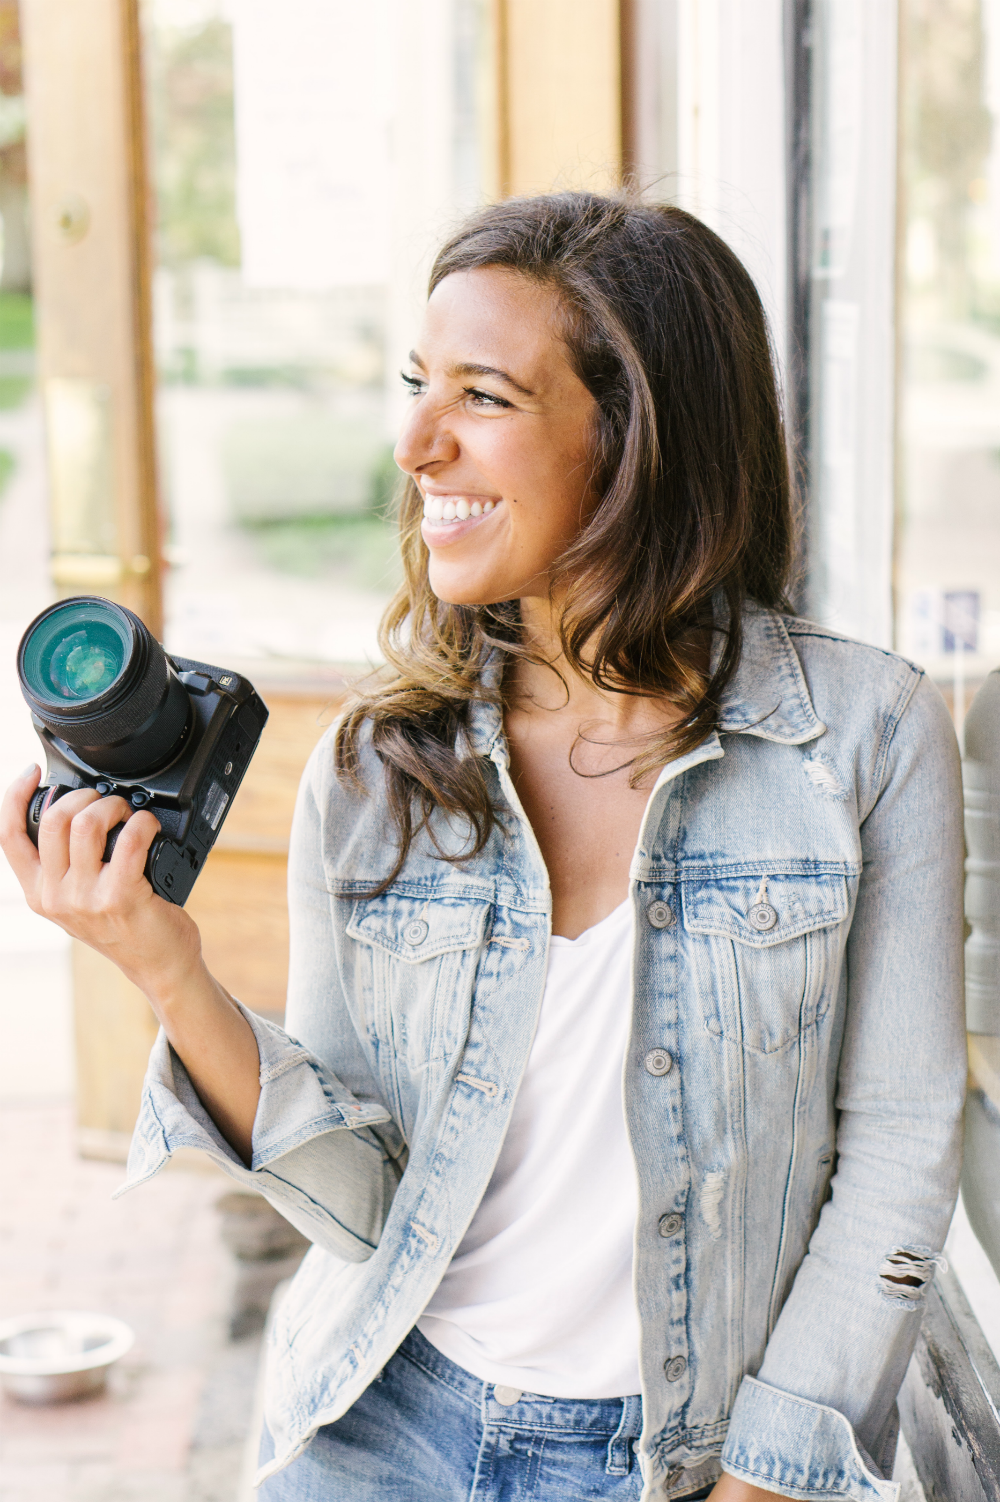 How to Become a Full-Time Photographer in 7 Clear Steps | Brand Photography & Social Media Photography | Alexis The Greek blog